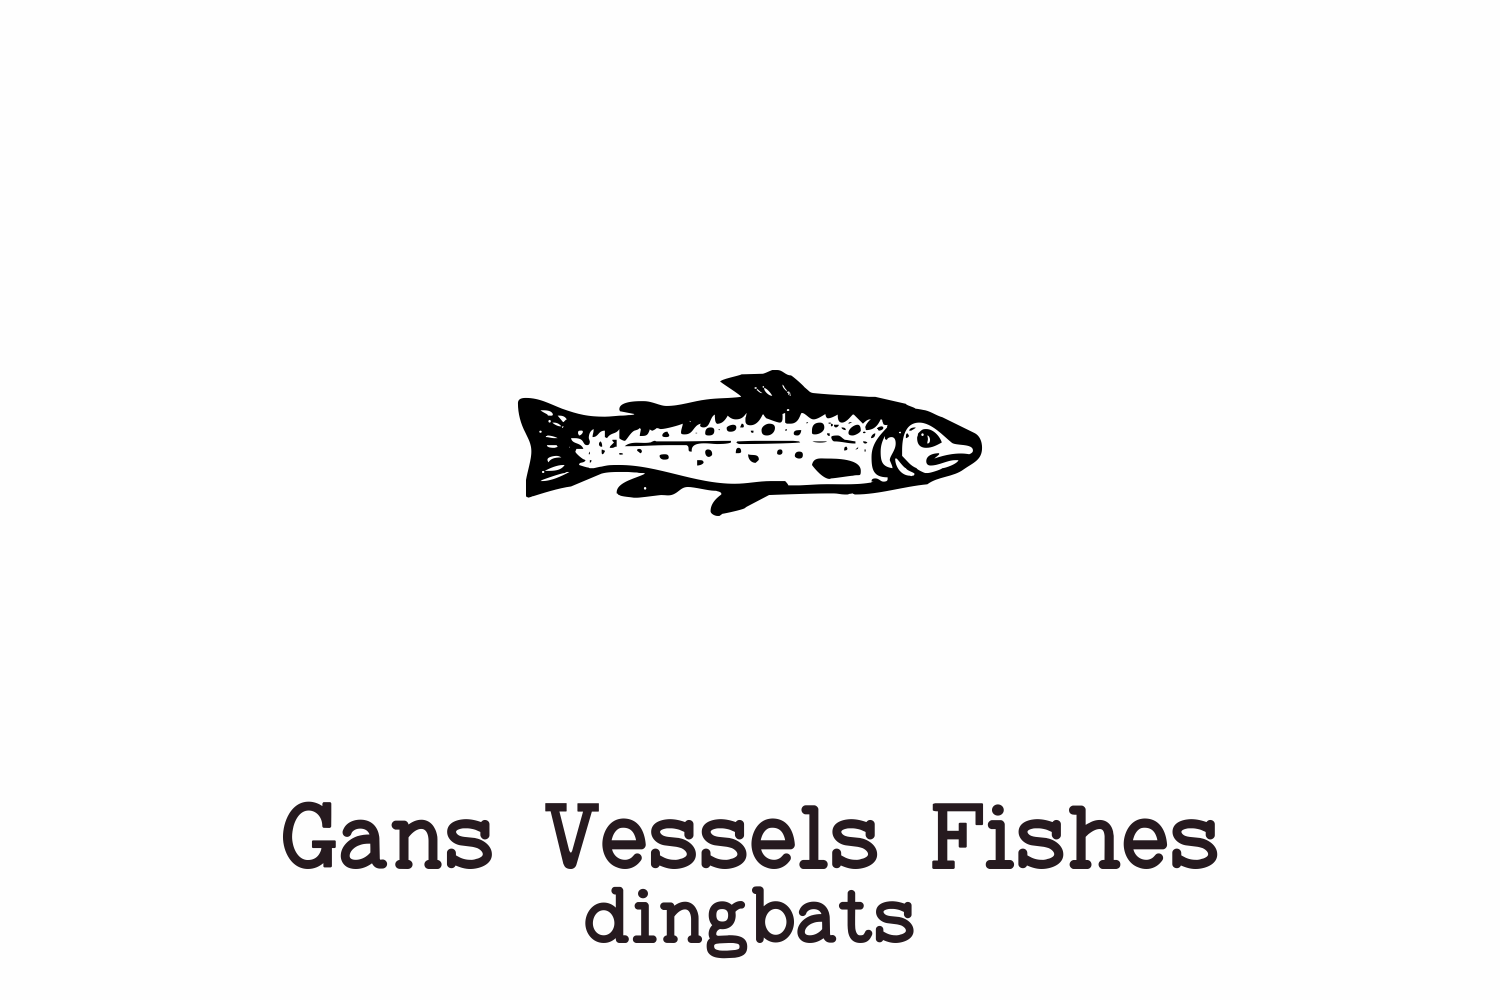 Gans Vessels Fishes example image 2